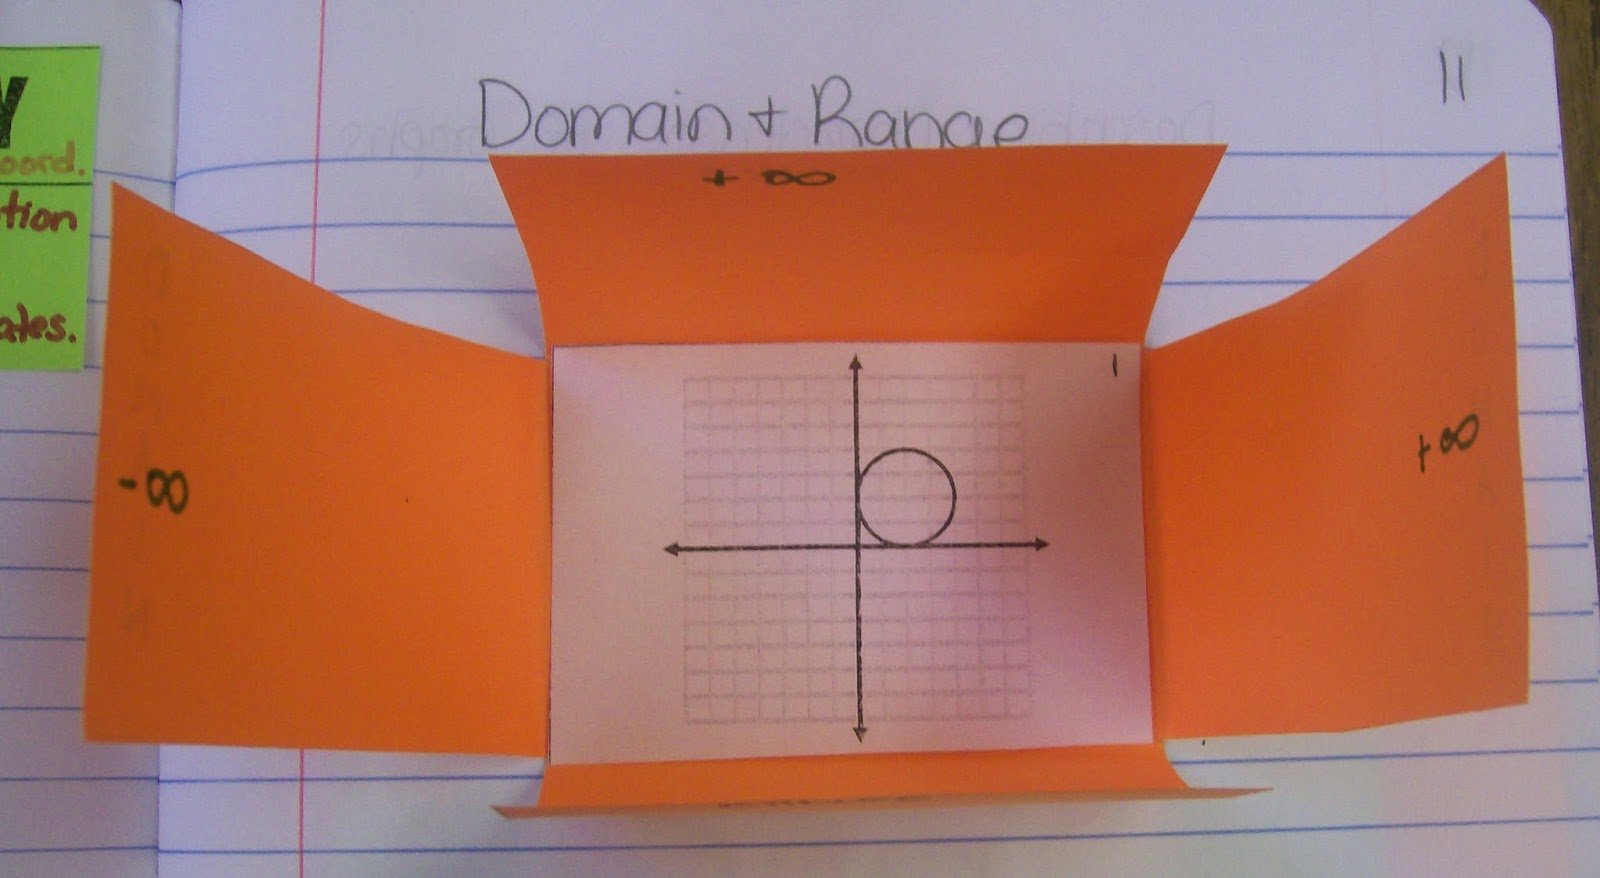 The Foldable Is Made To Perfectly Hold Our Domain And Range Practice Cards  That Are Housed In The Envelope